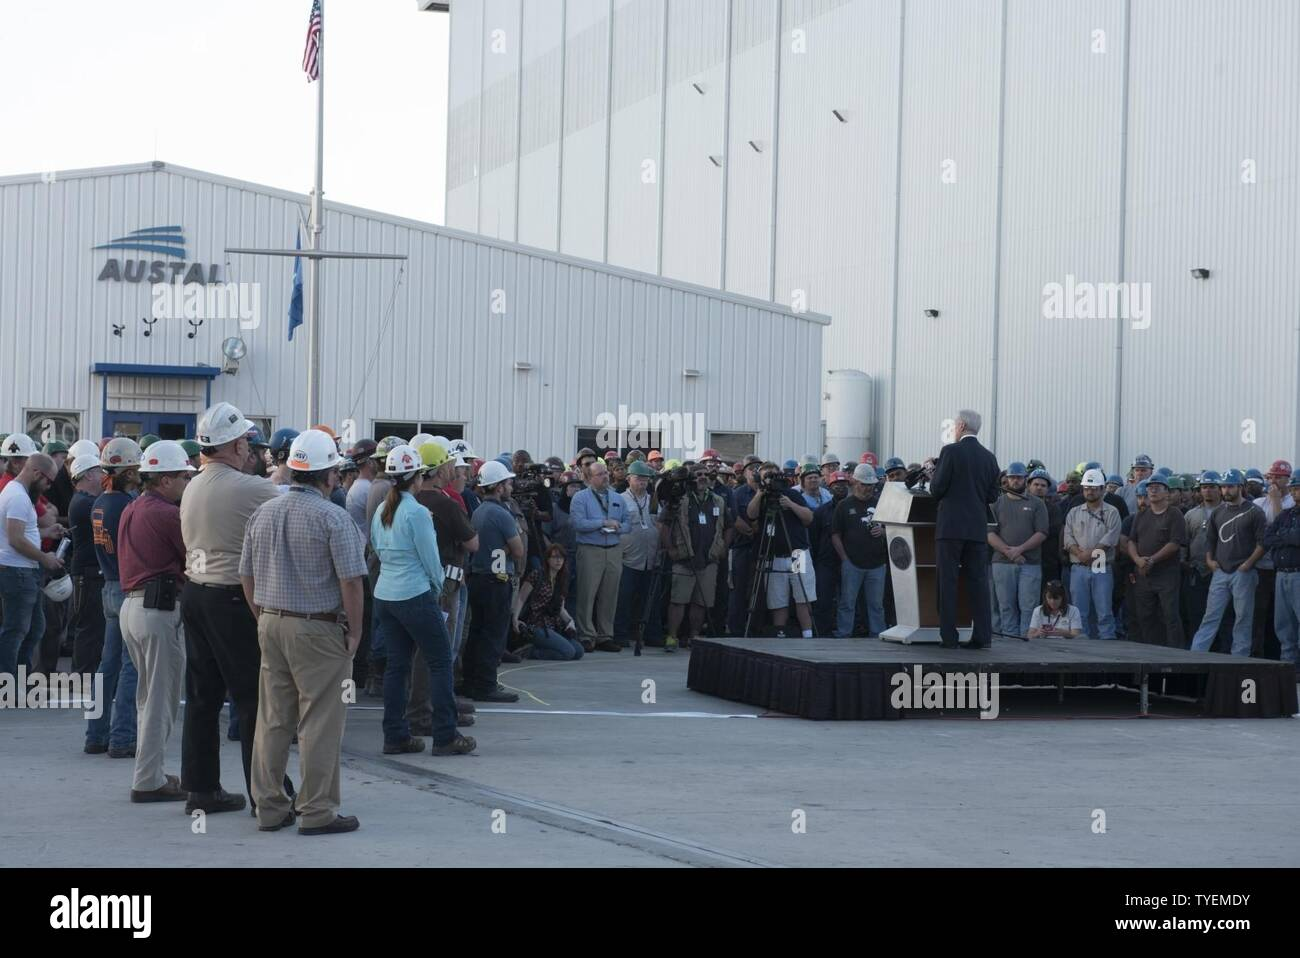 Austal Stock Photos & Austal Stock Images - Alamy